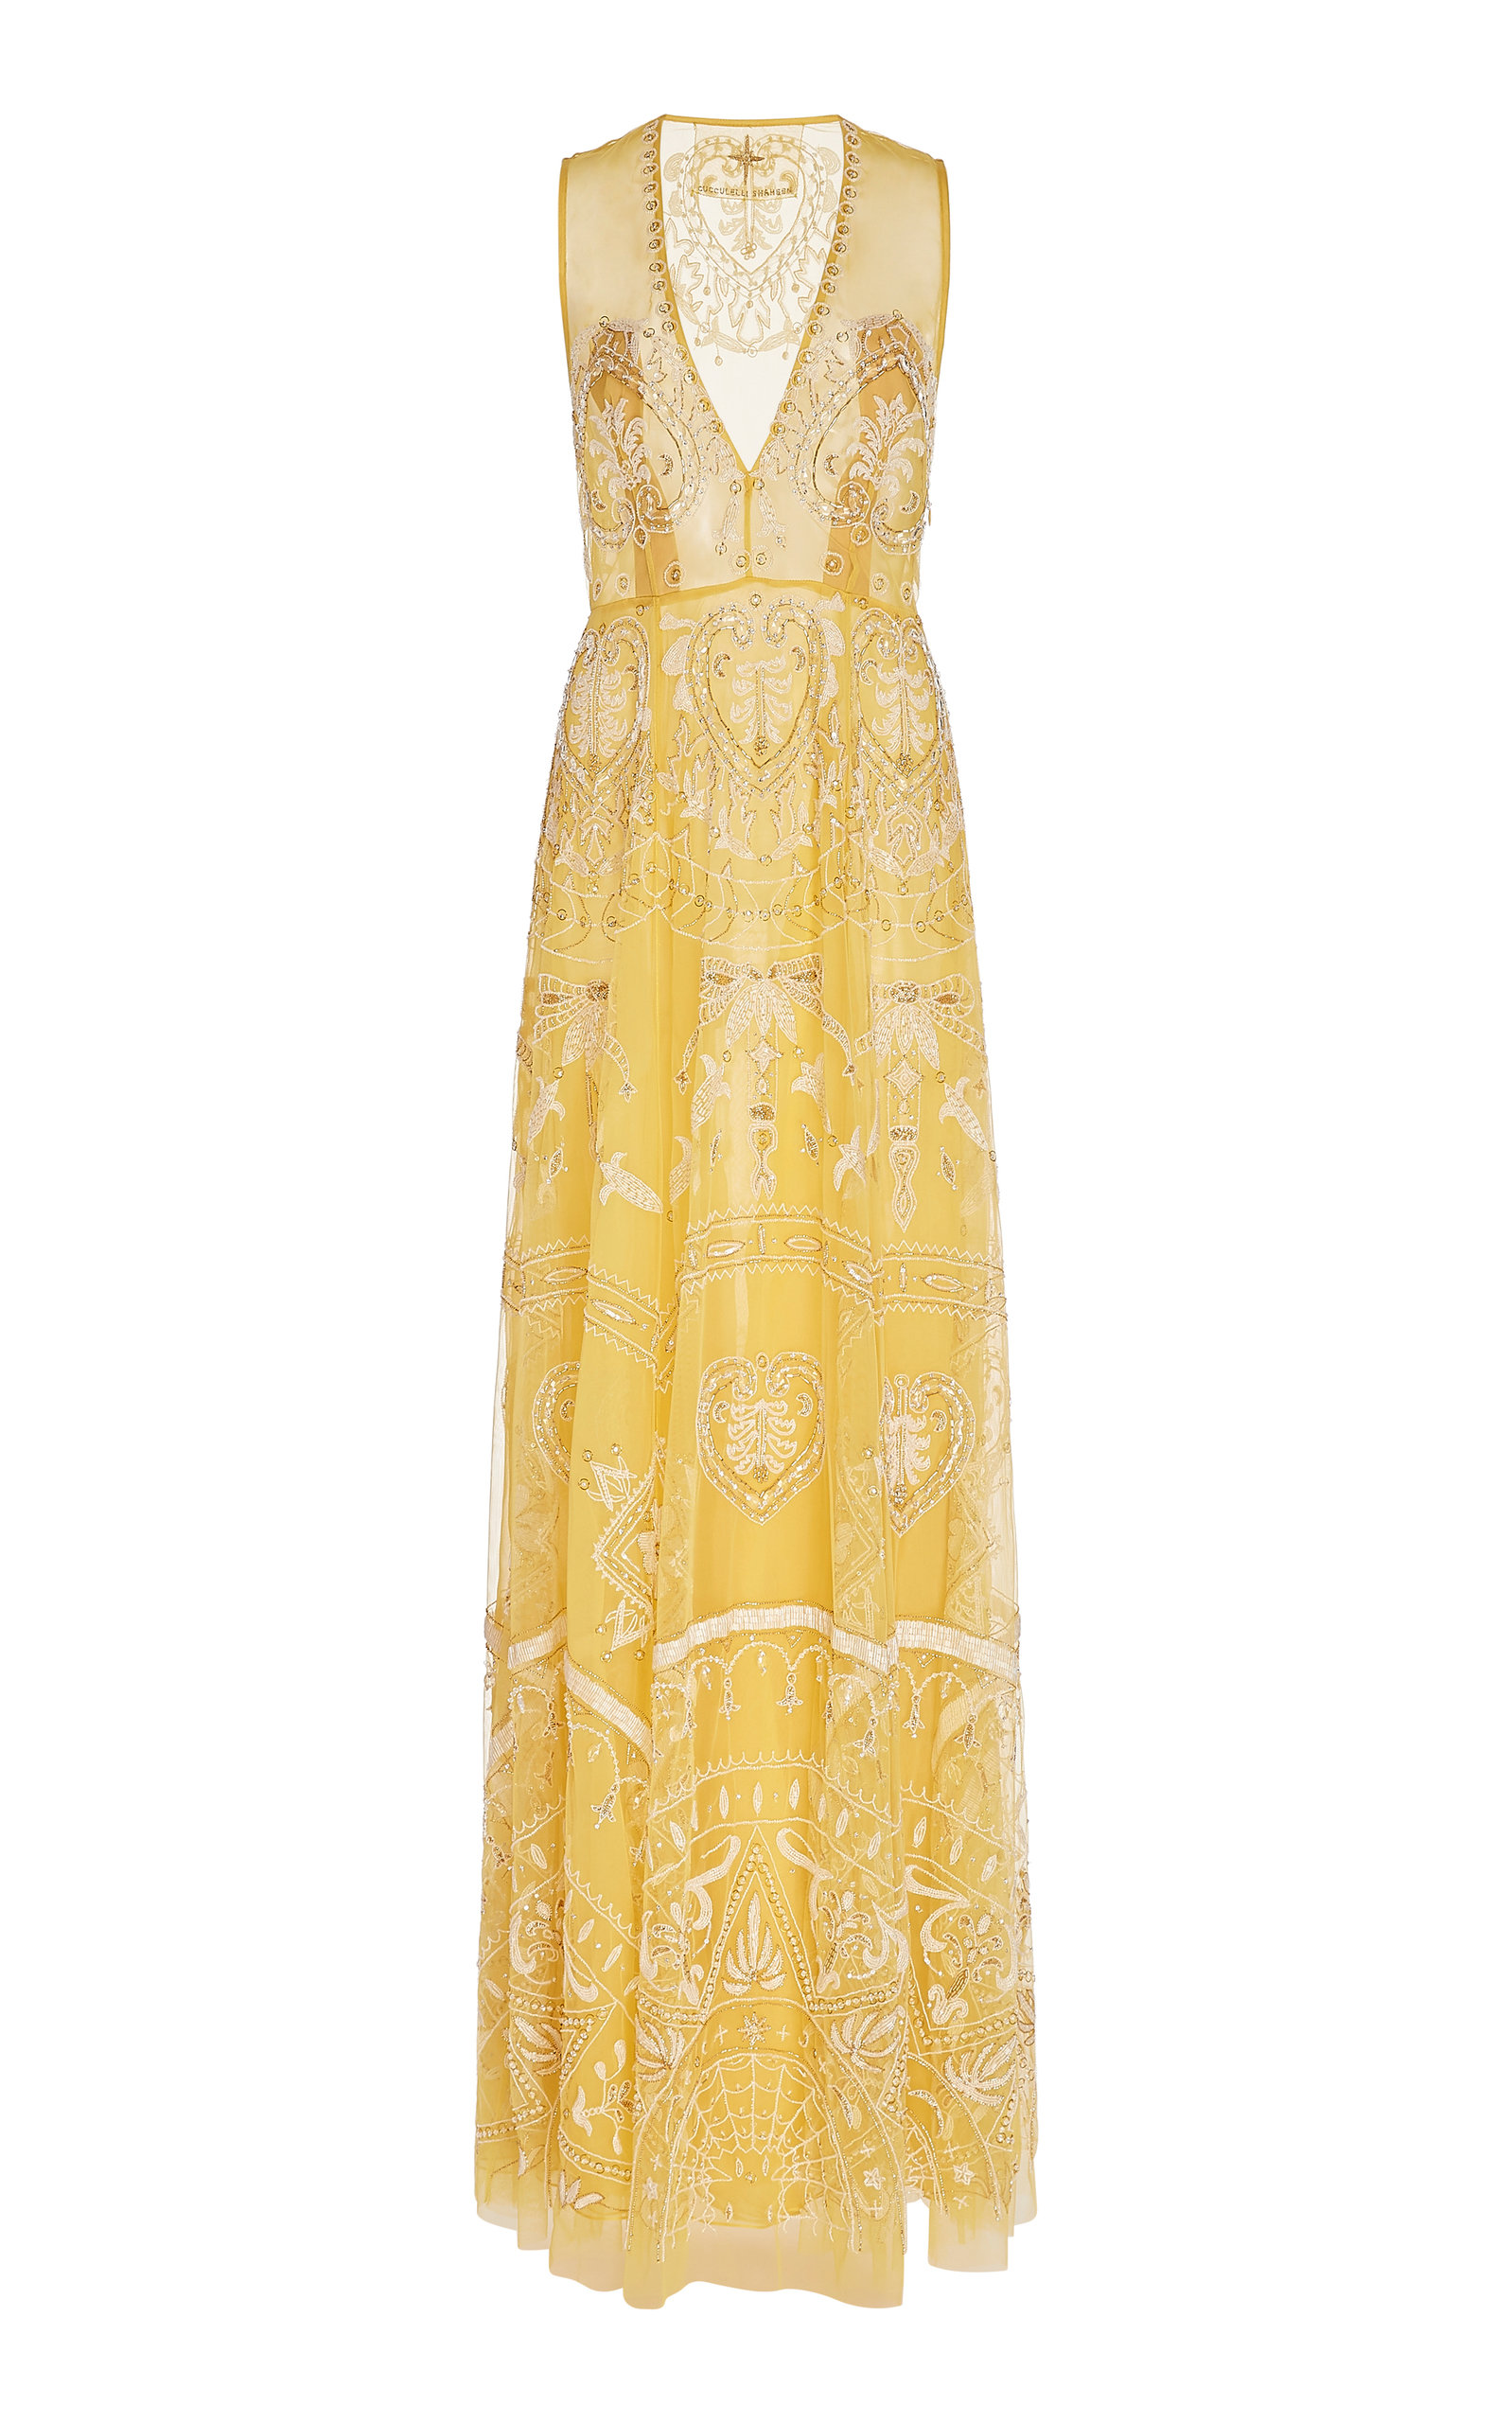 Buy Cucculelli Shaheen Incendita A-Line Embroidered Tulle Dress online, shop Cucculelli Shaheen at the best price